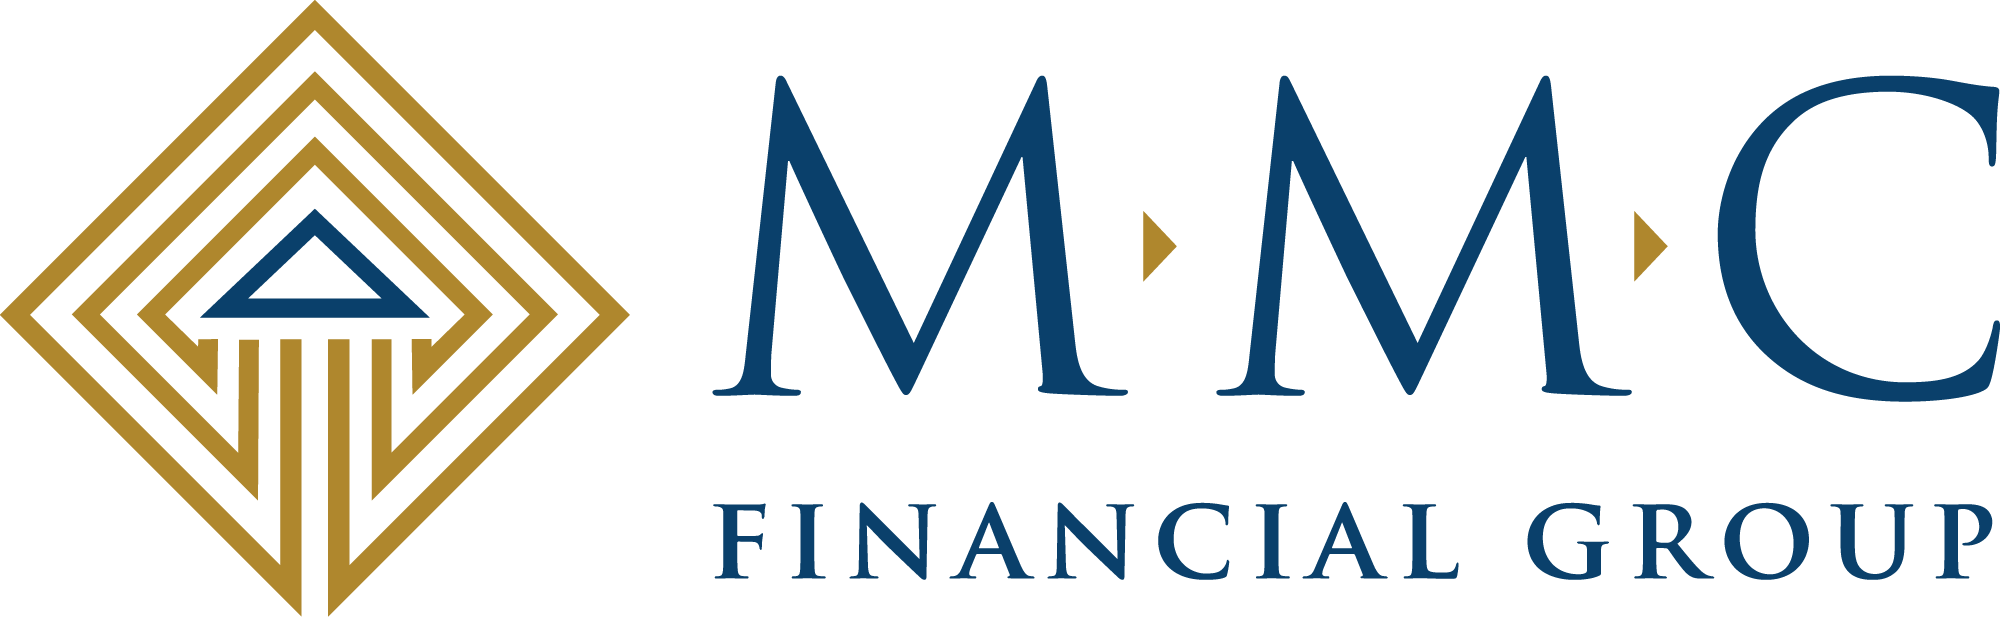 MMC Financial Group